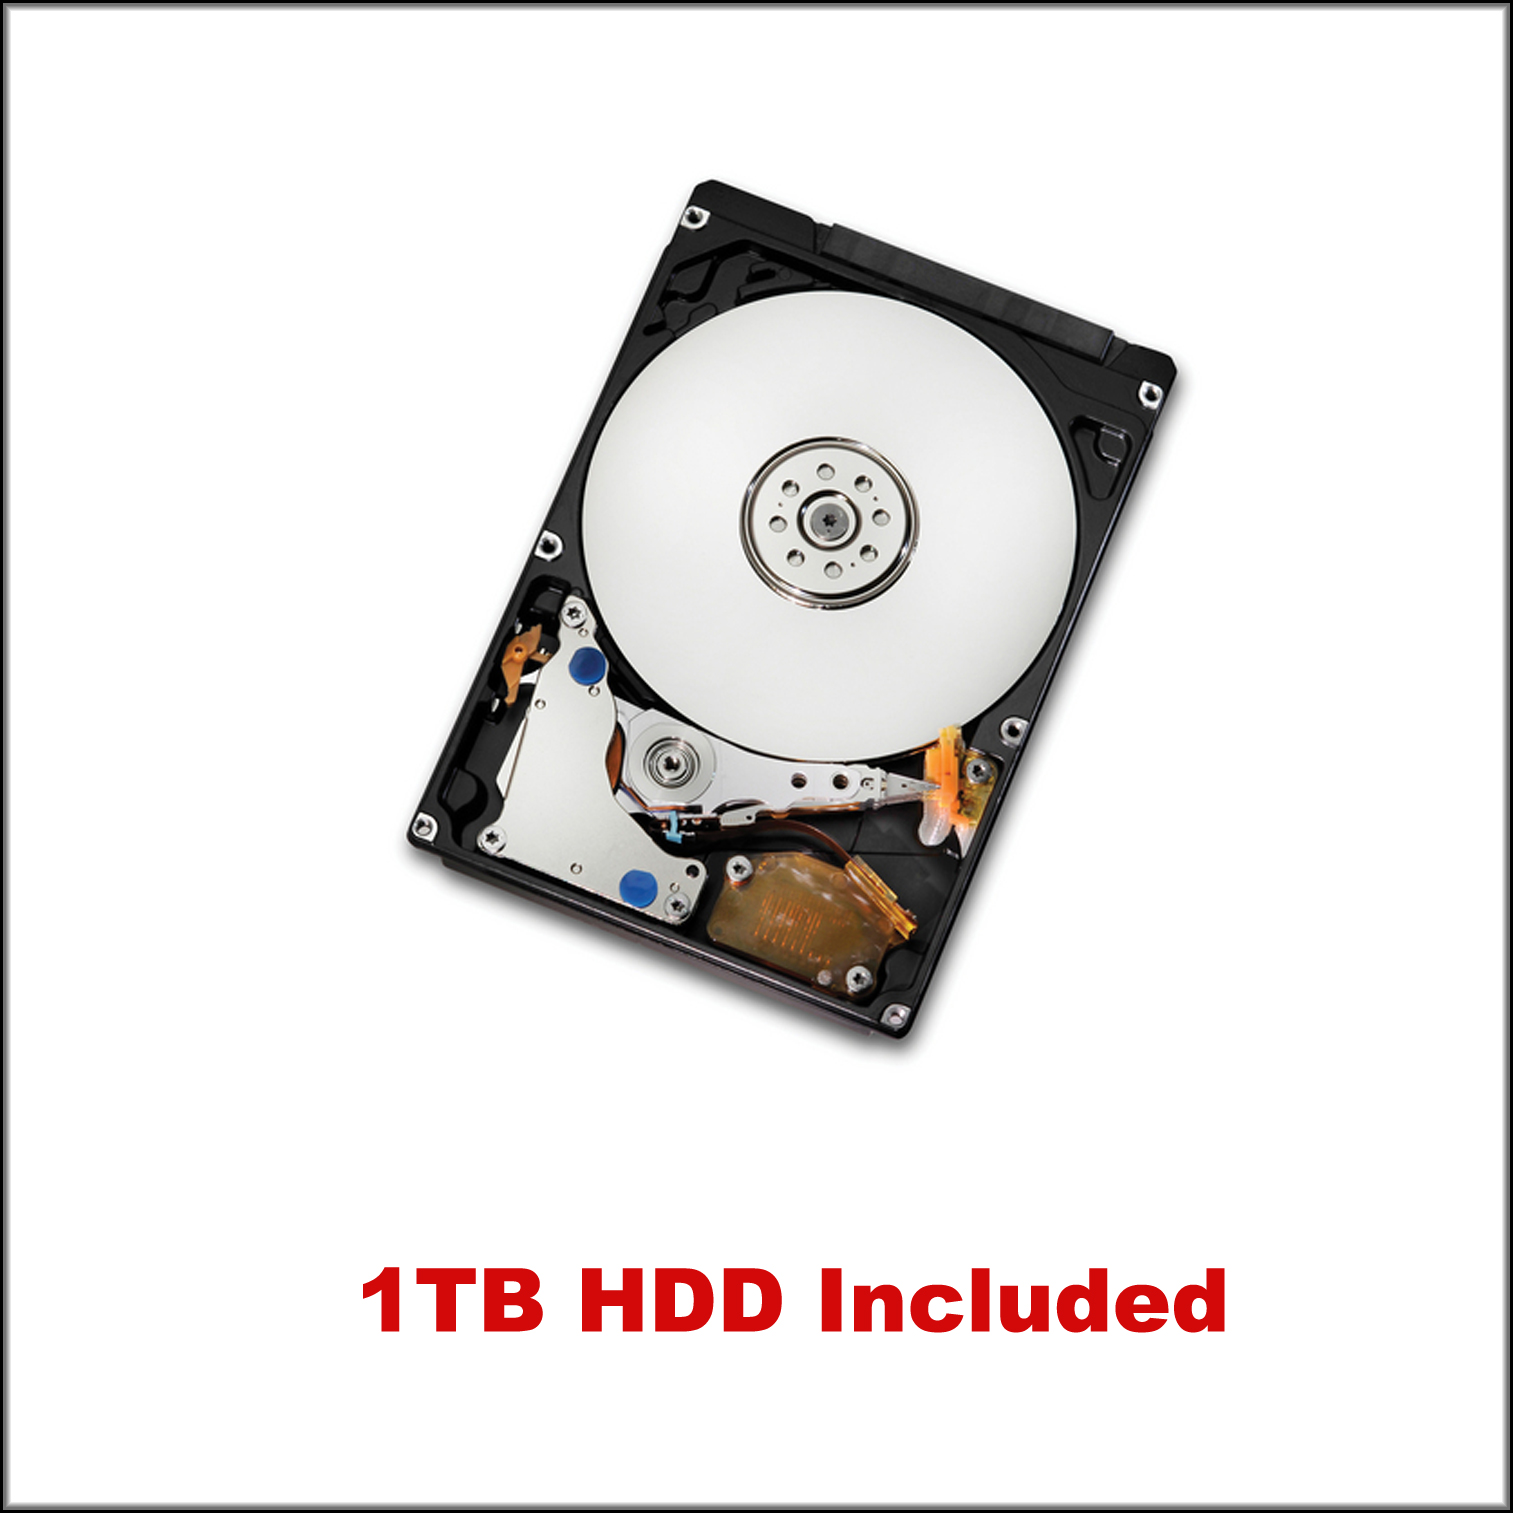 With 1TB HDD